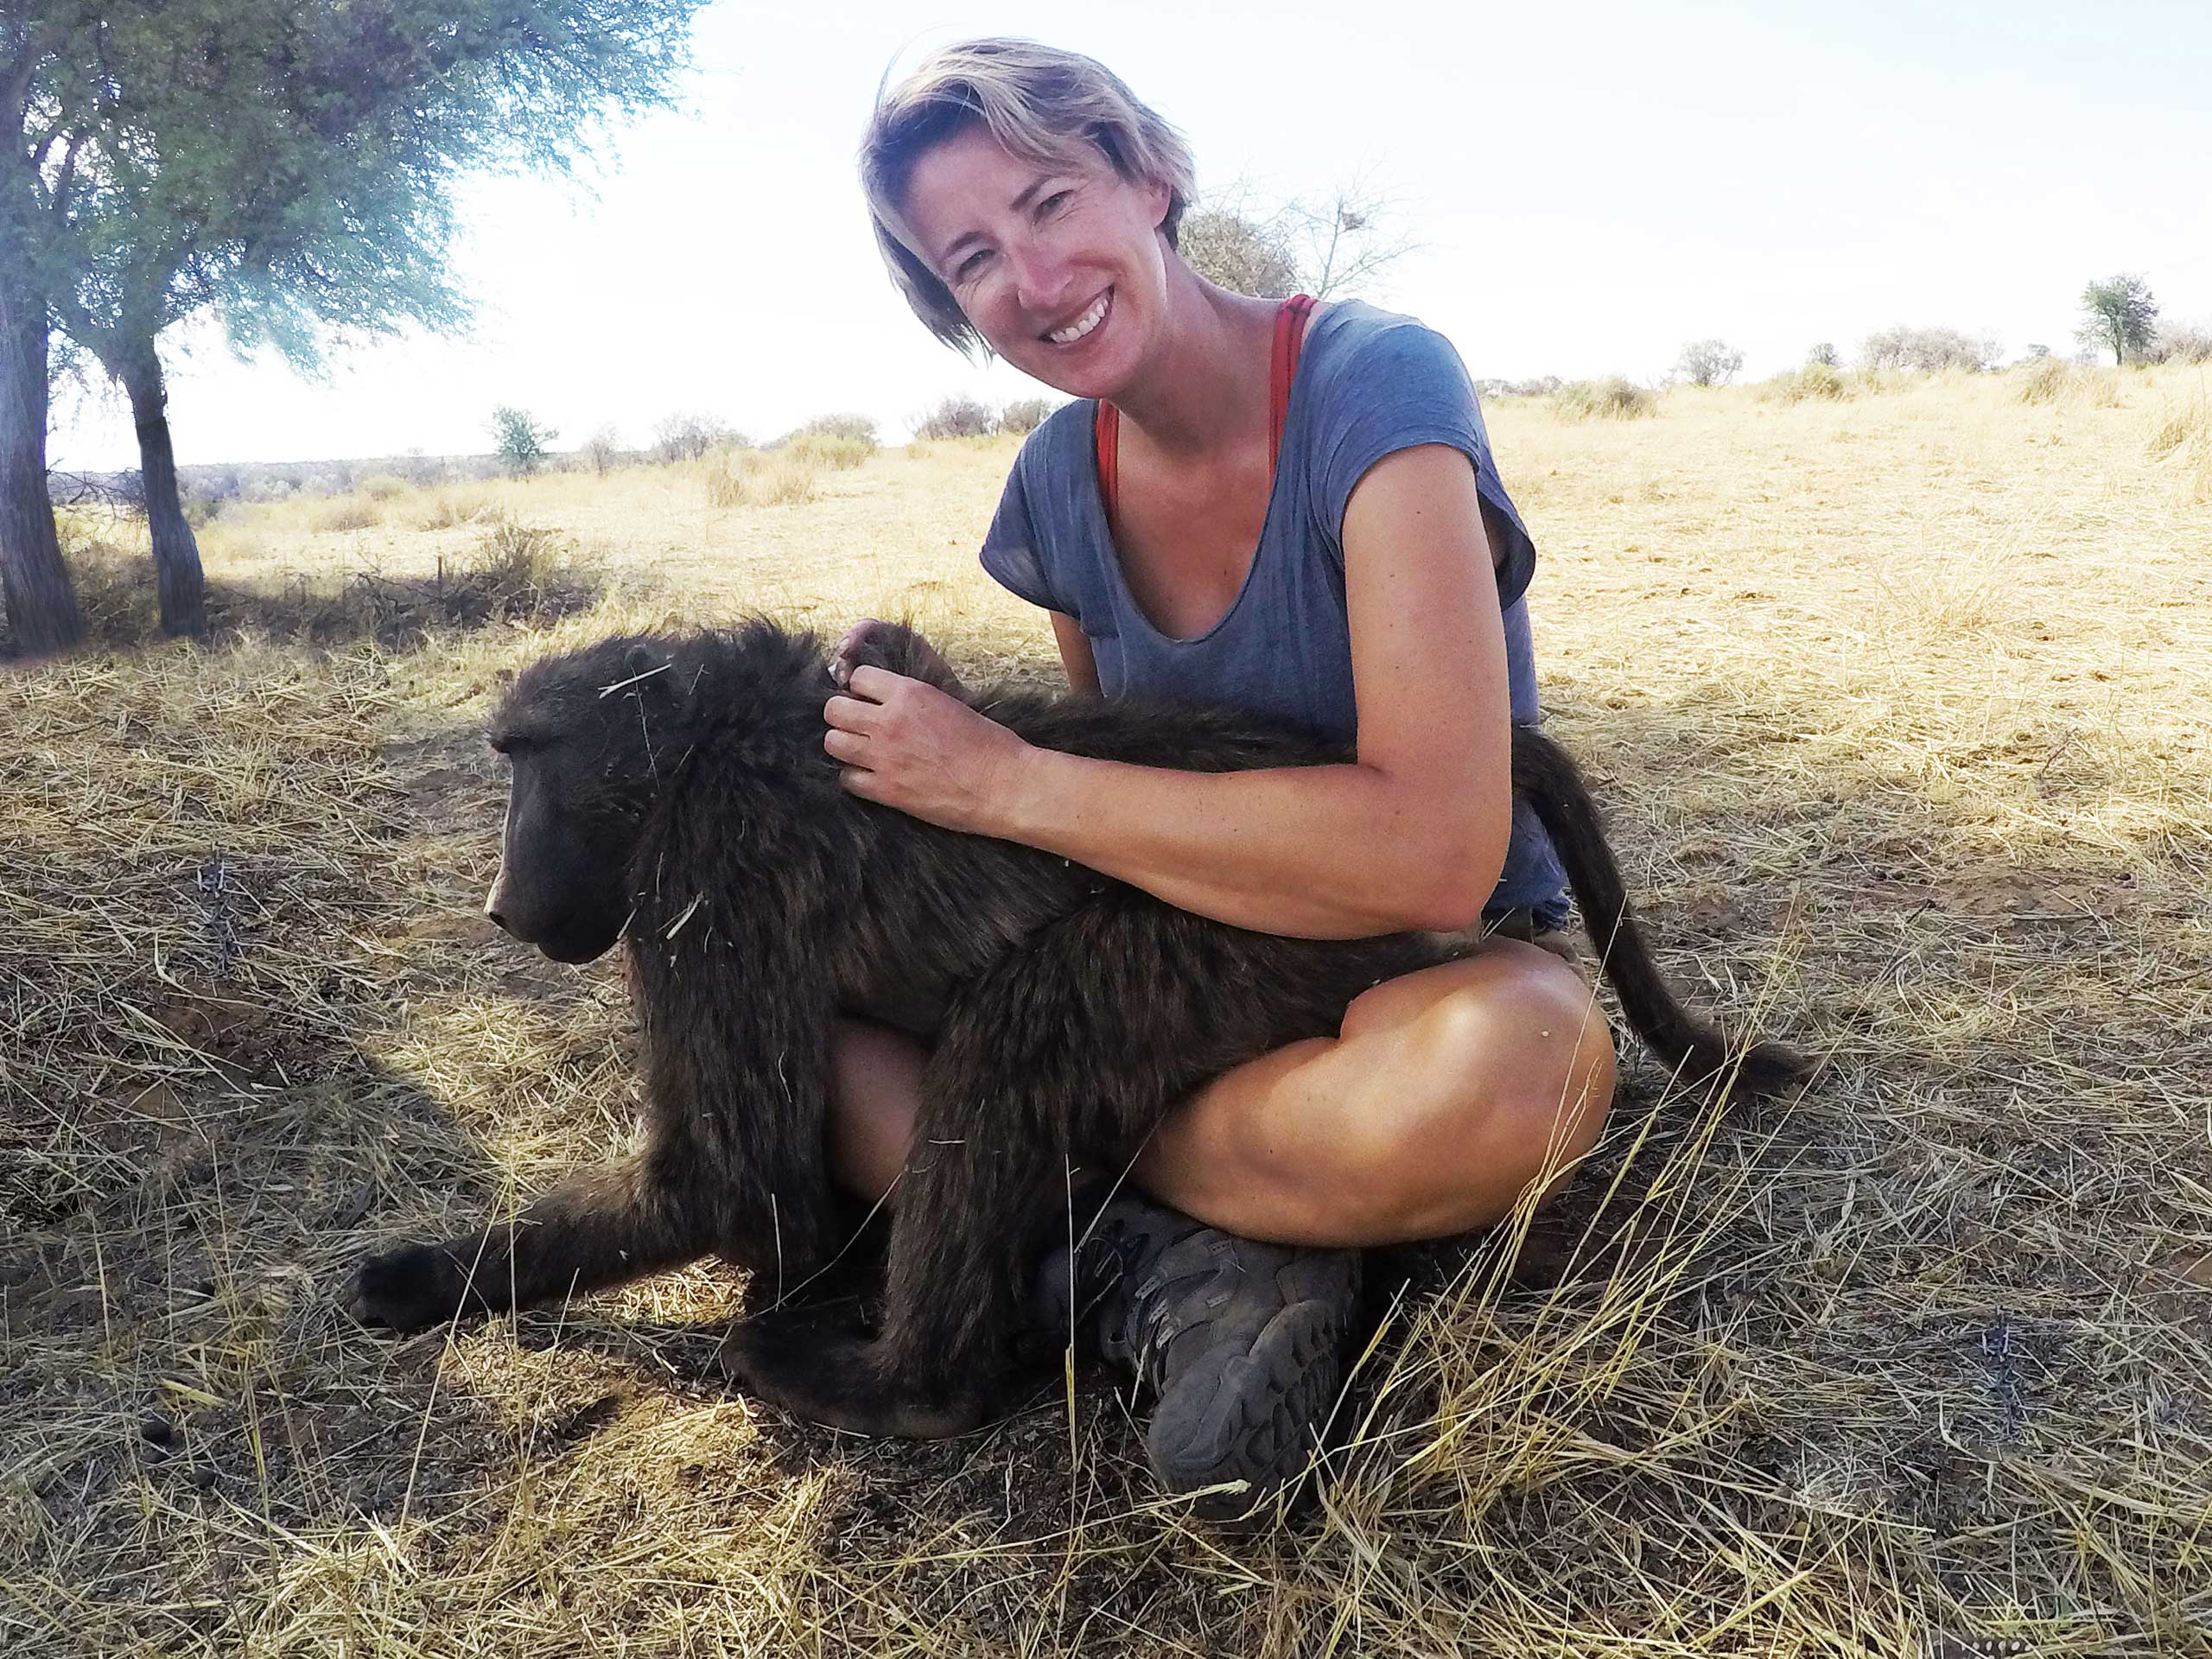 SueWhereWhyWhat and a young Baboon N/a'ankuse, Namibia, Africa. Volunteering at a wildlife sanctuary in Namibia - Week Two